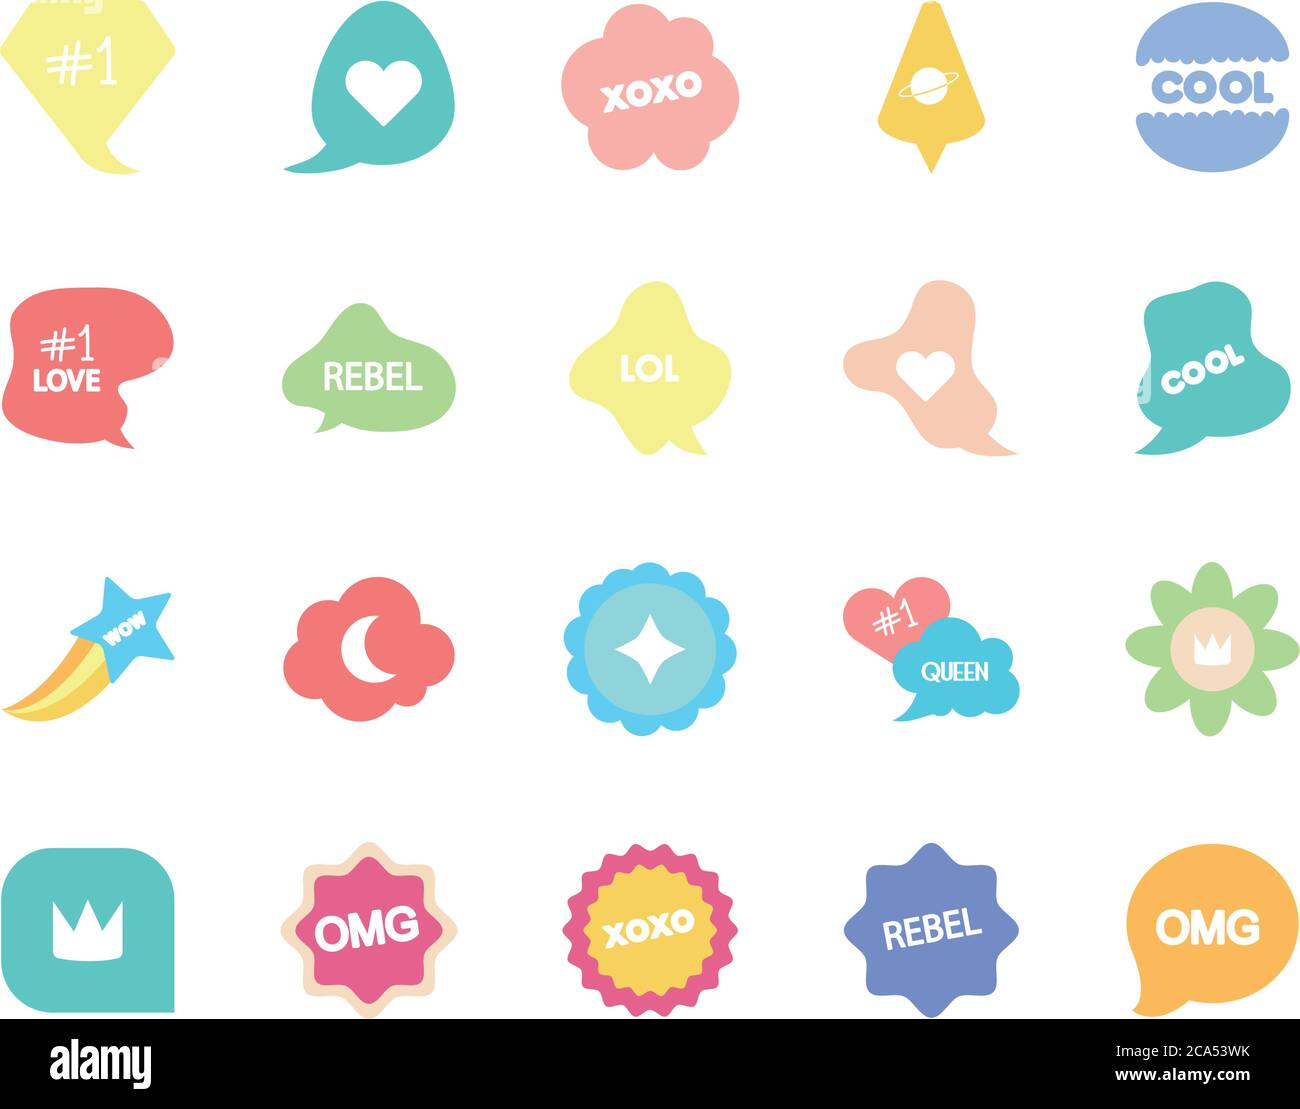 chat icon stock vector images page 29 alamy alamy